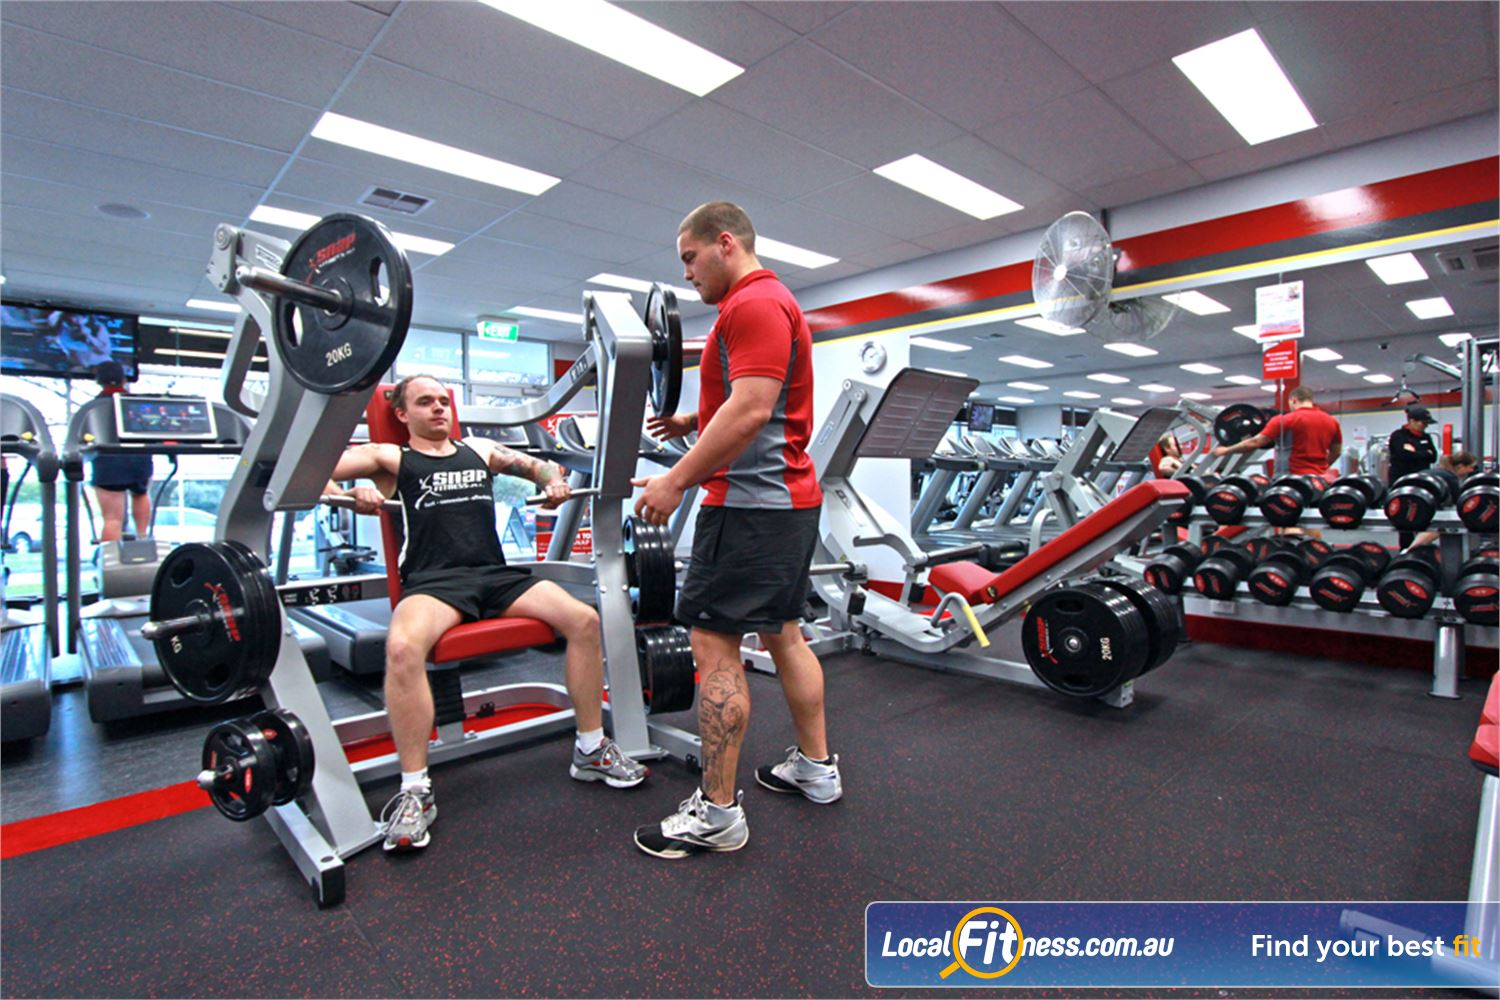 Snap Fitness Croydon State of the art plate loading strength training equipment.